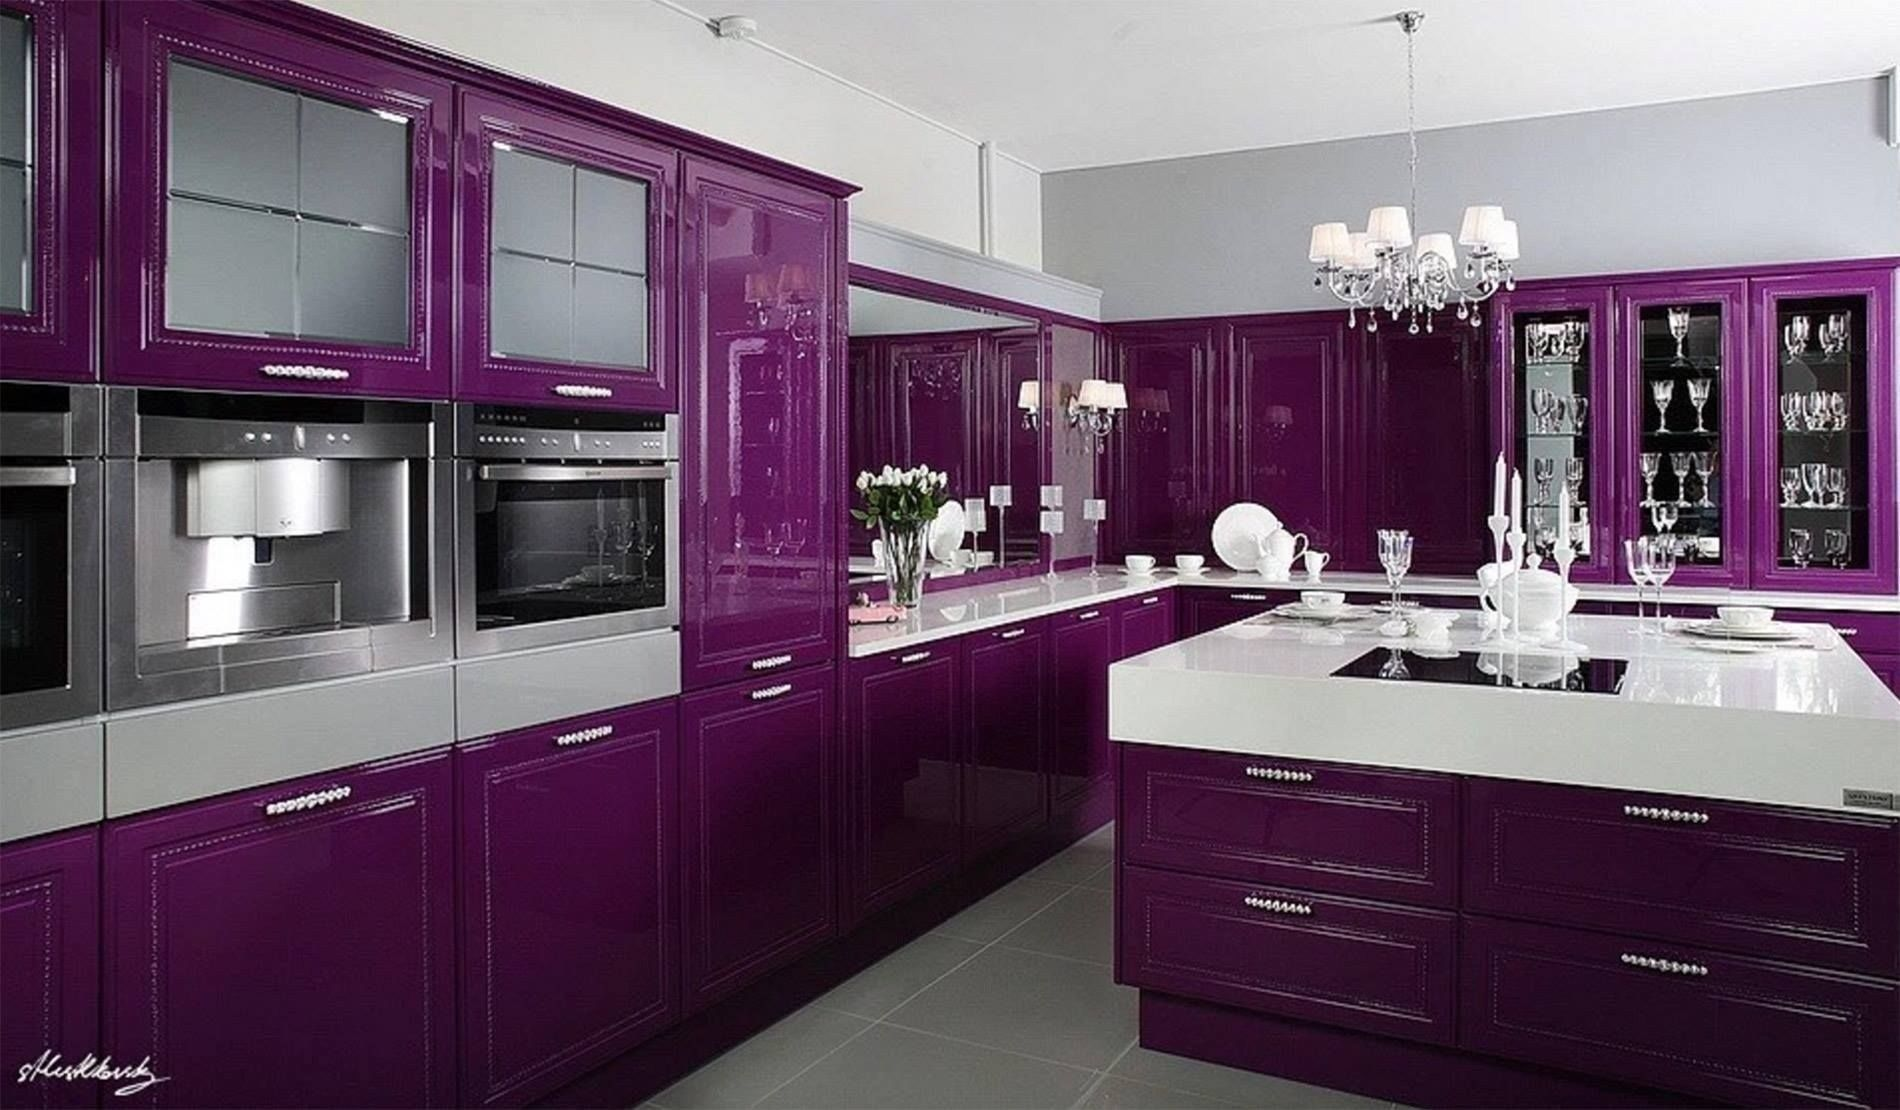 22 Cheap And Lovely Kitchens Design Decor Ideas Purple Kitchen Cabinets Purple Kitchen Purple Cabinets